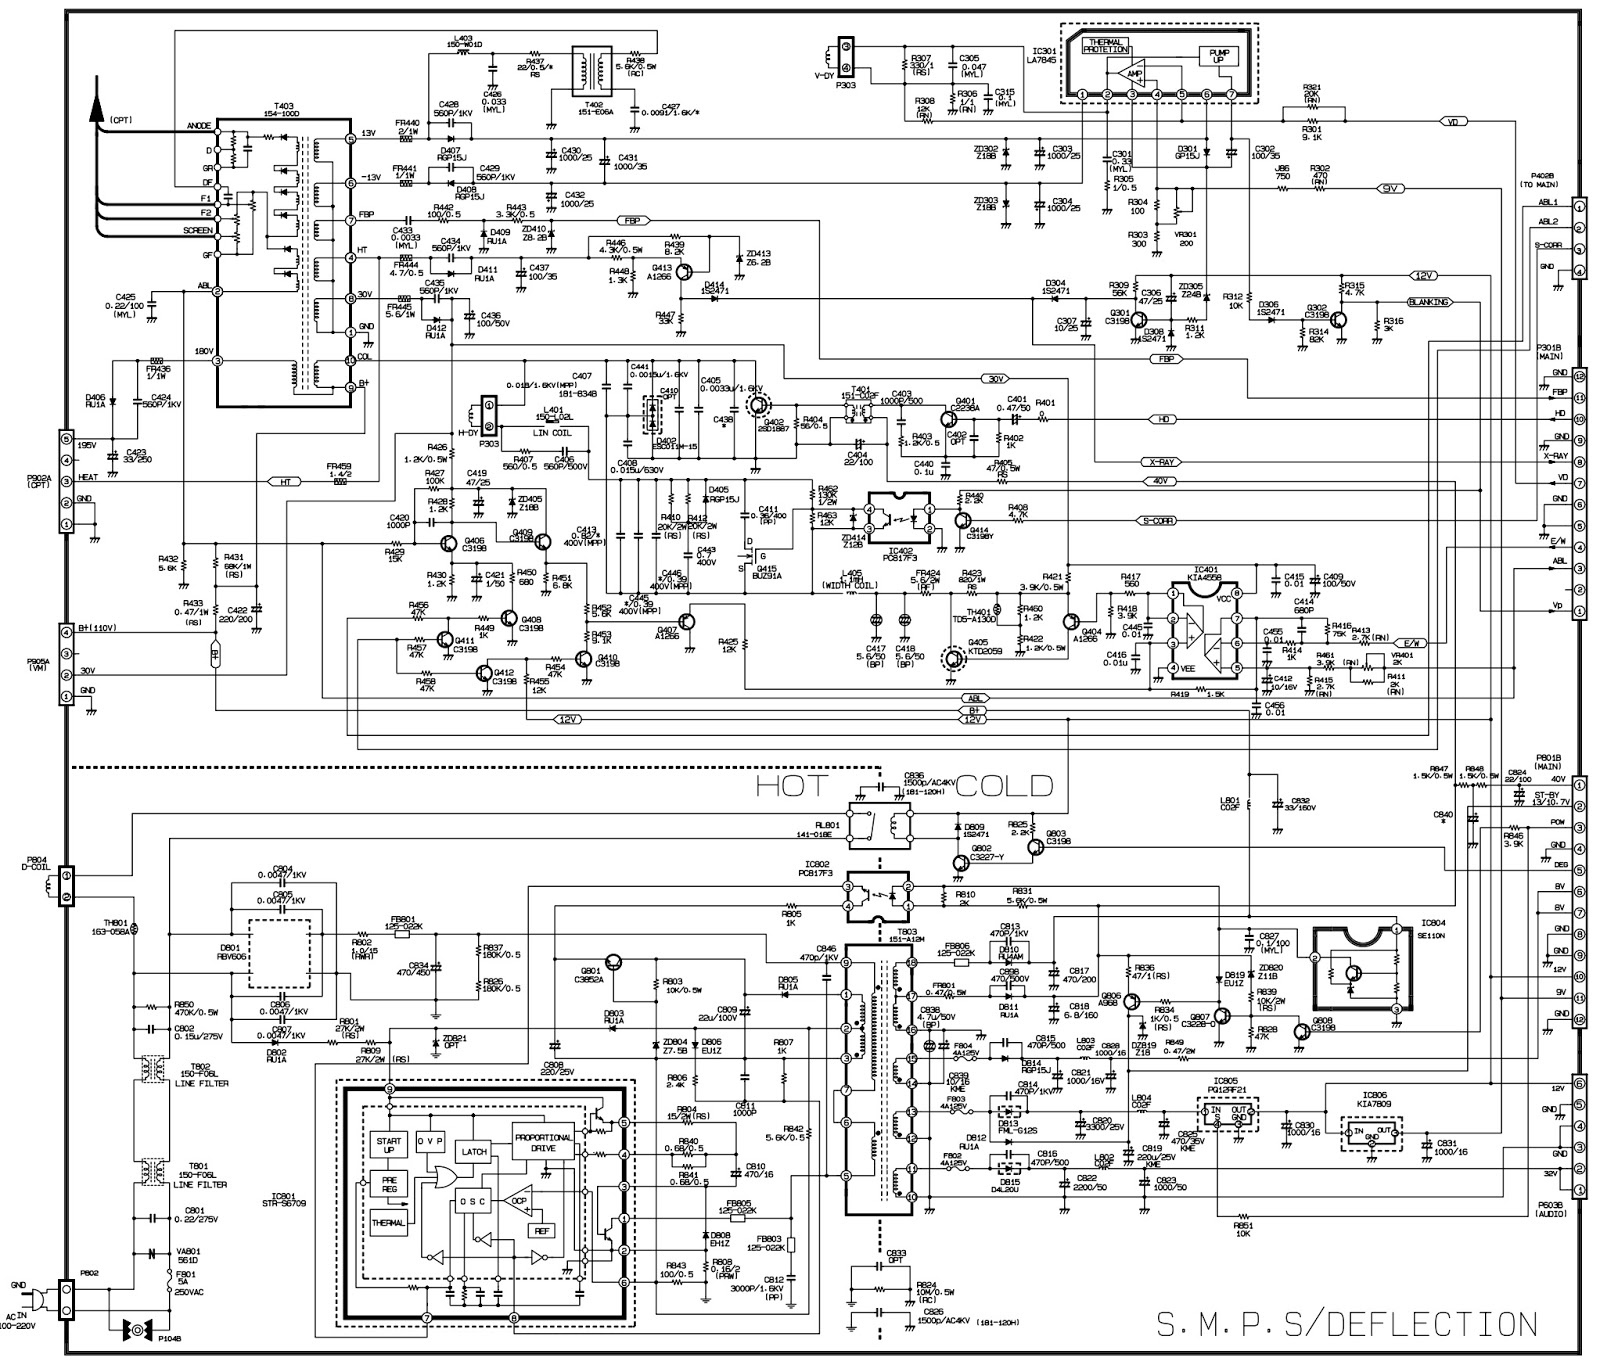 medium resolution of wp32a30 lg 32 inch crt tv circuit diagram schematic diagrams lcd tv problem troubleshooting crt tv